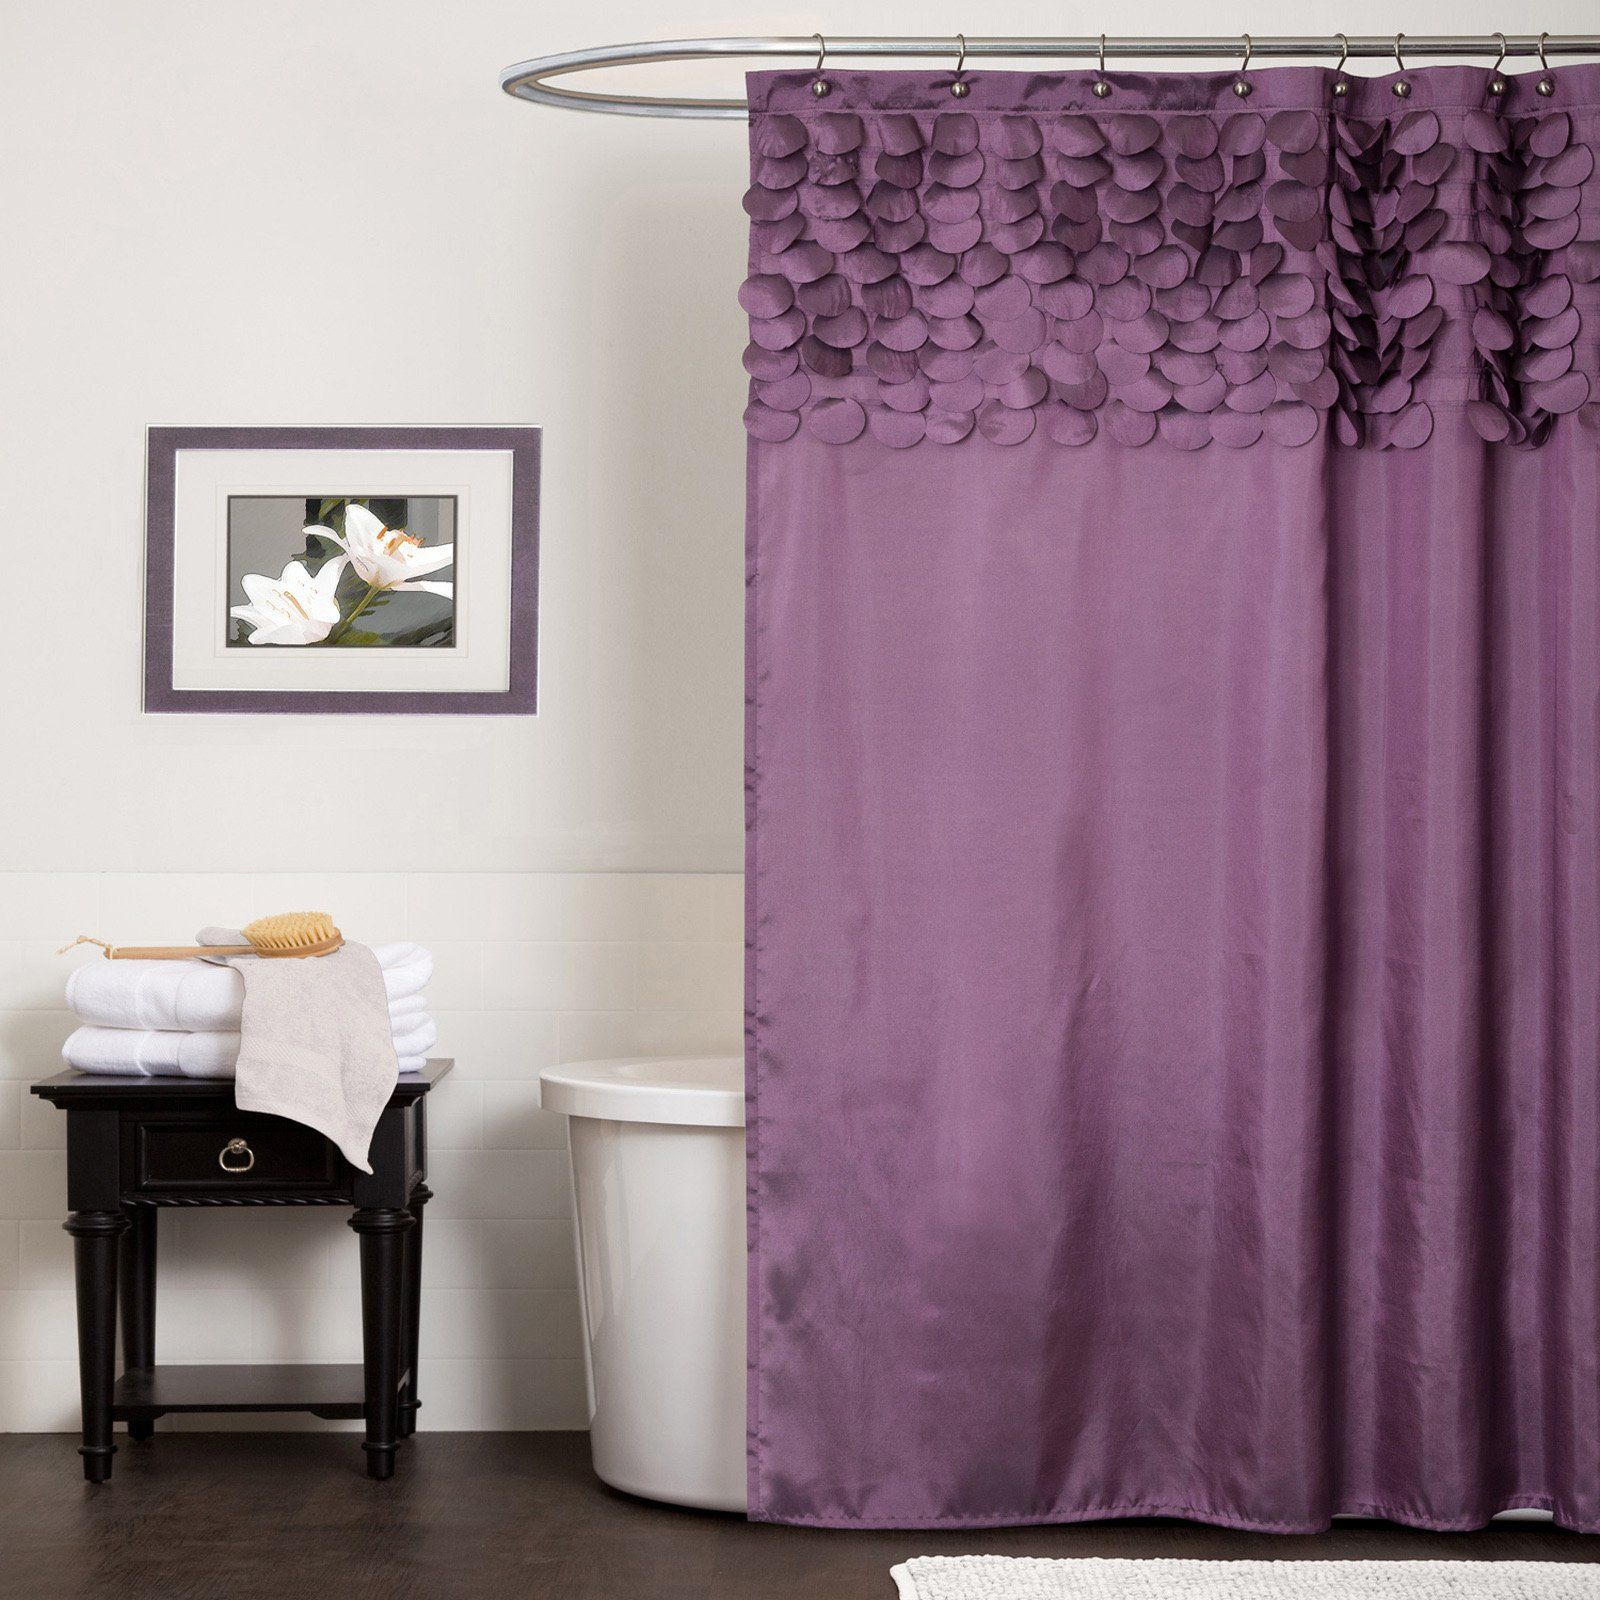 Lush Decor Lillian Shower Curtain From Hayneedle